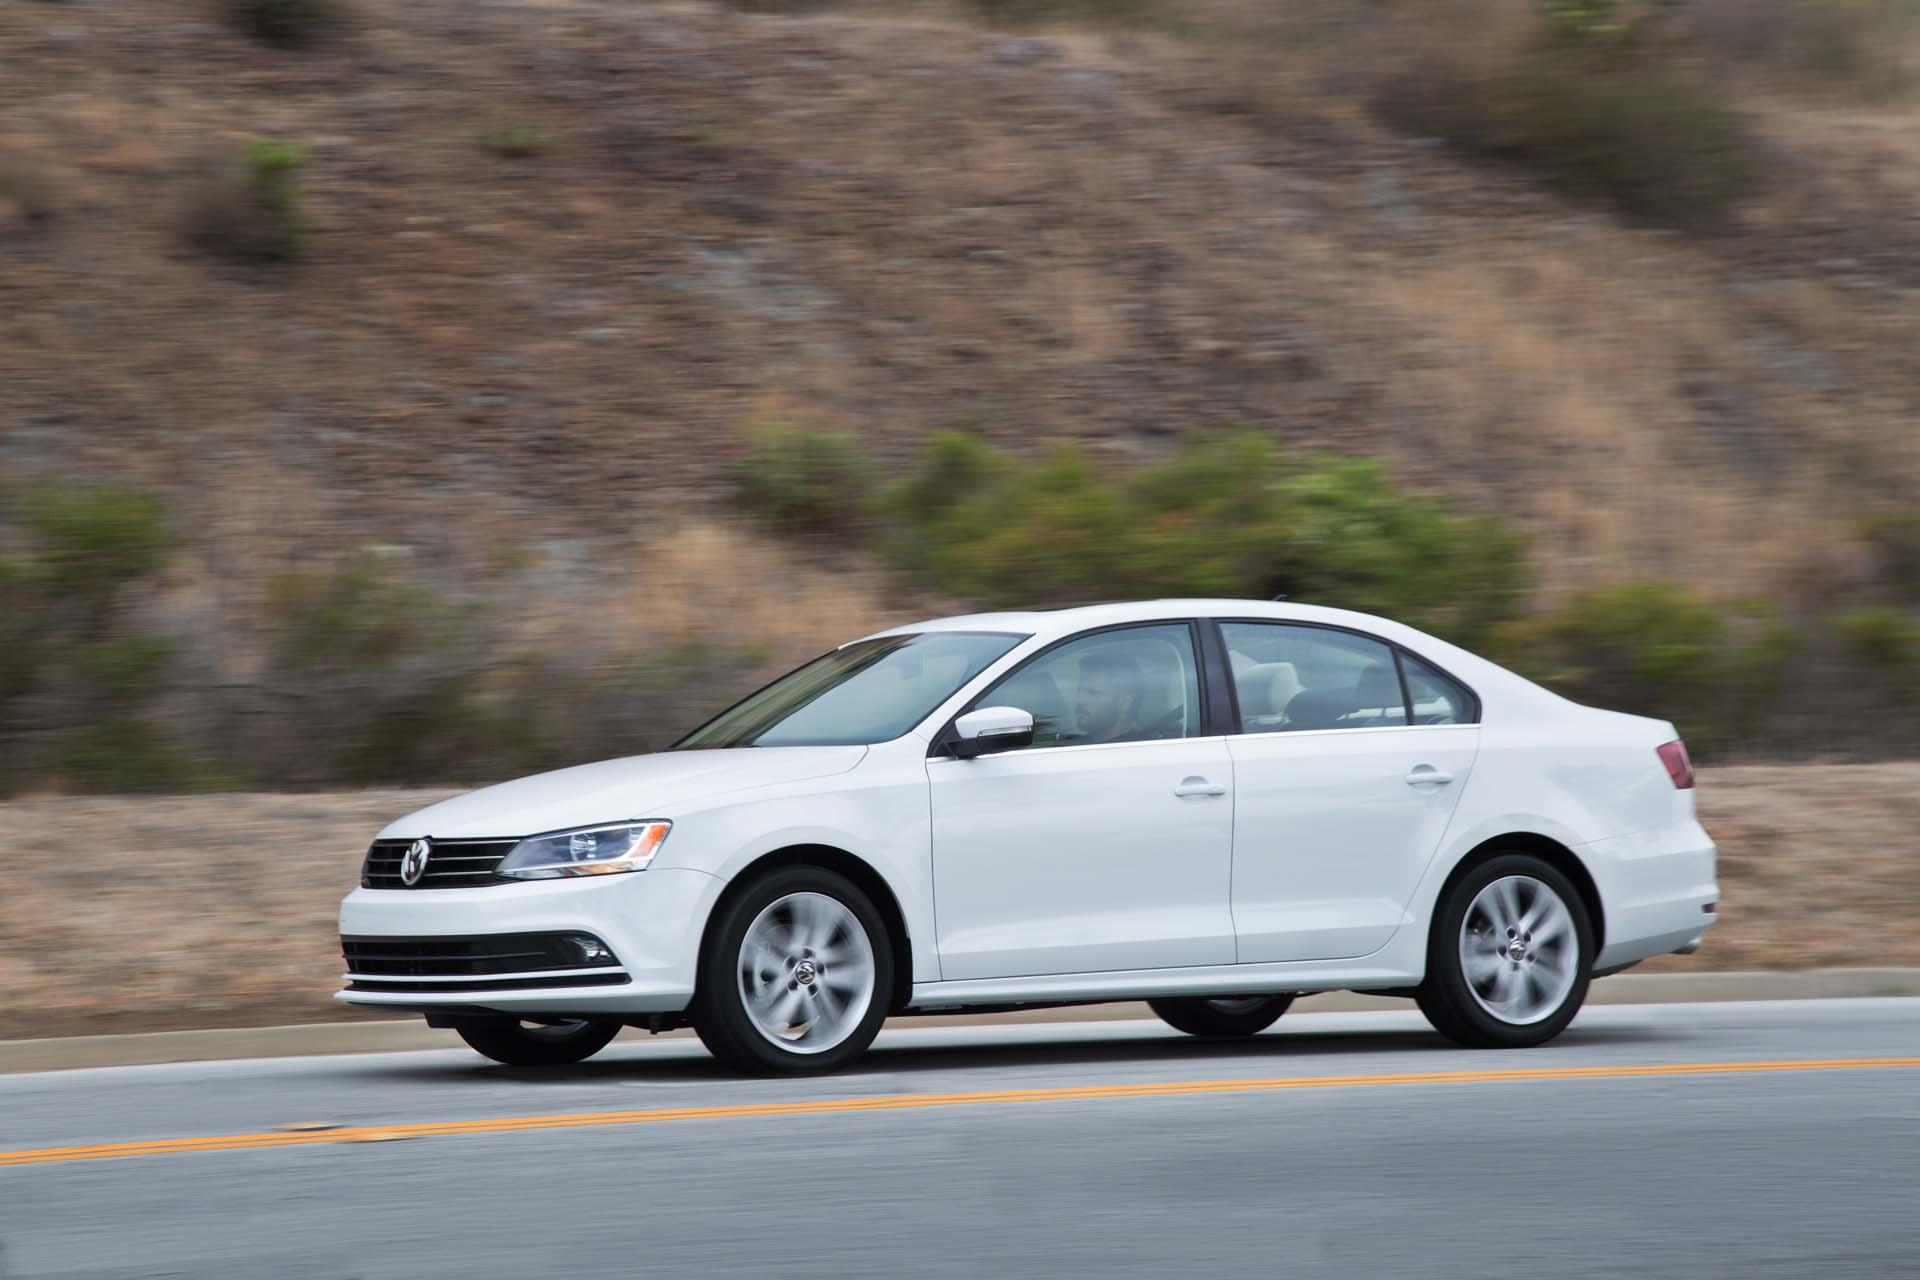 2017 Volkswagen Jetta (VW) Quality Review - The Car Connection